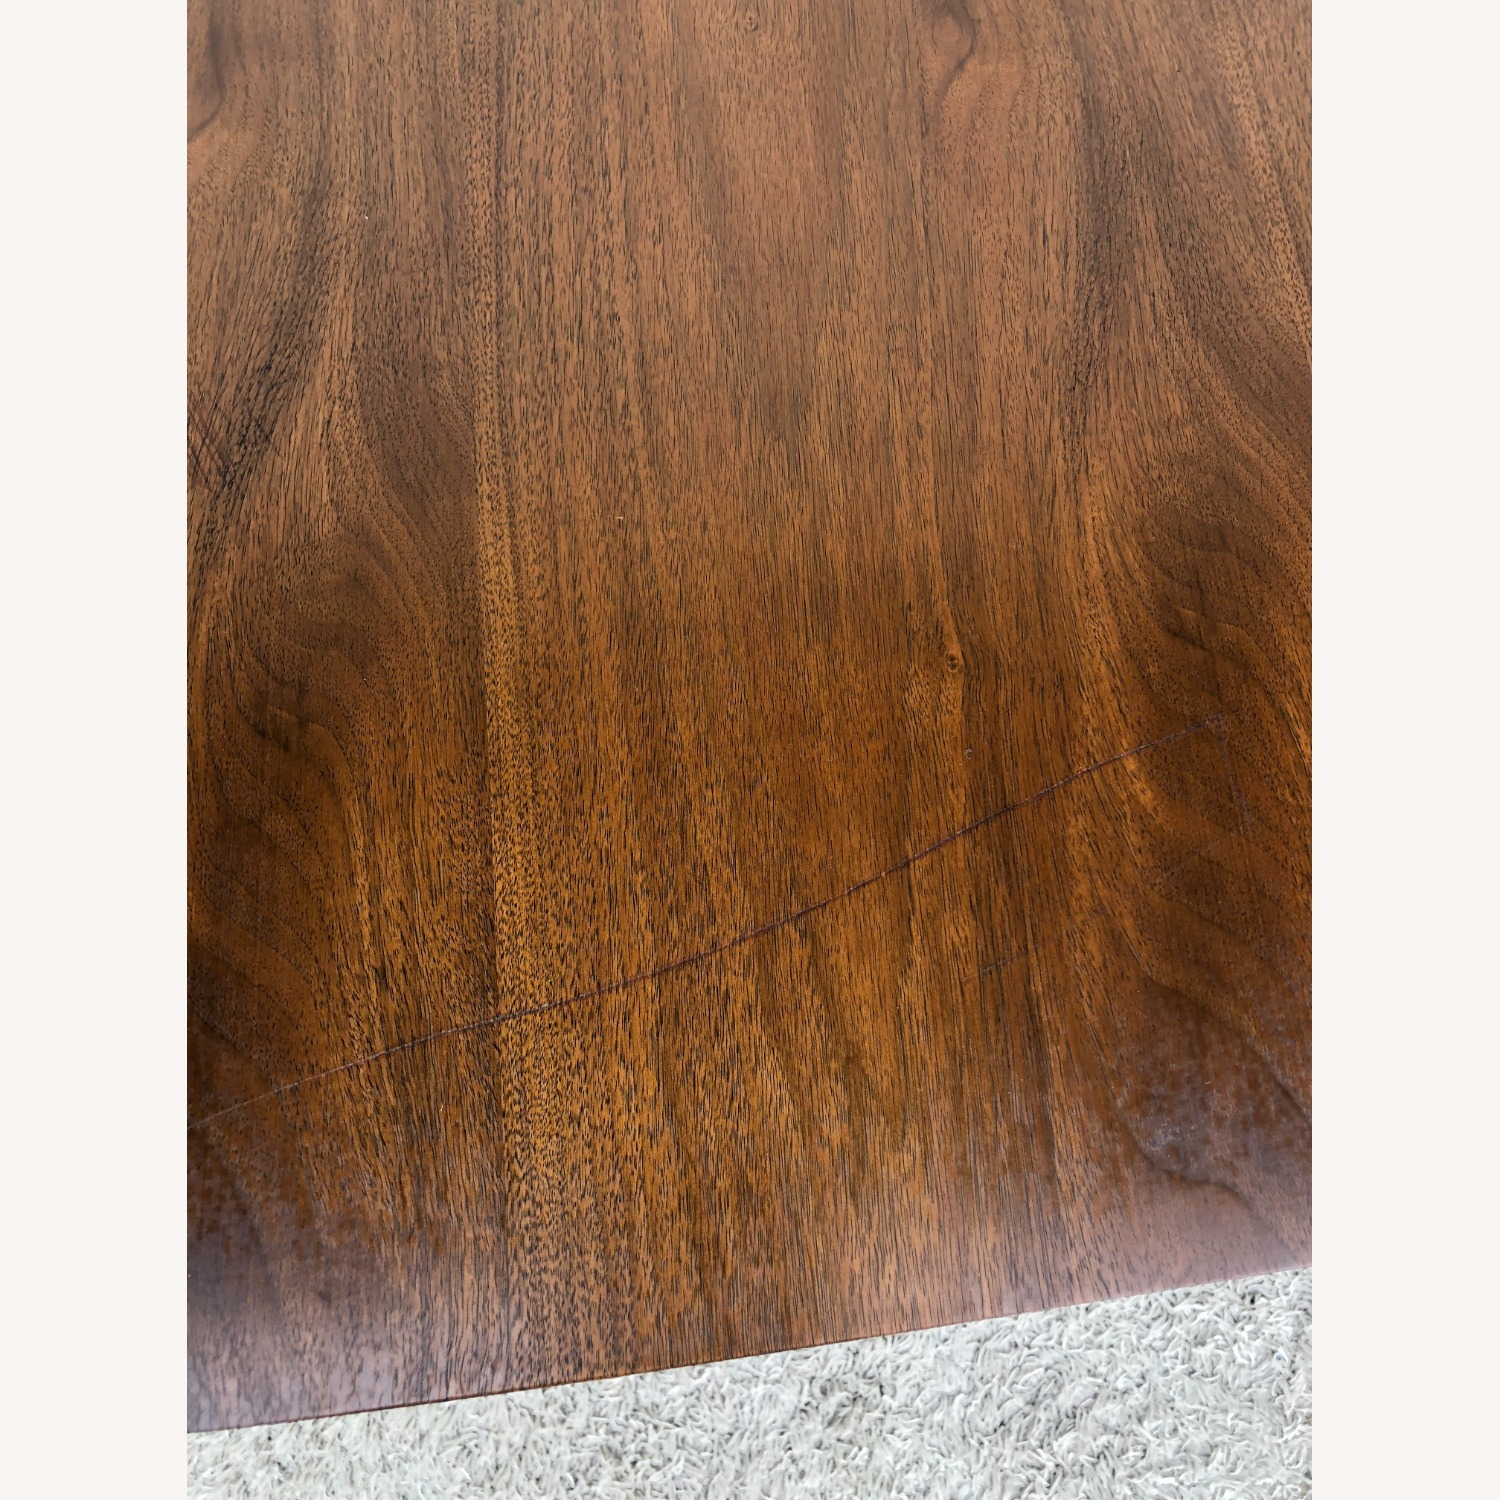 Mid Century Walnut Dining Table with One Leaf - image-9